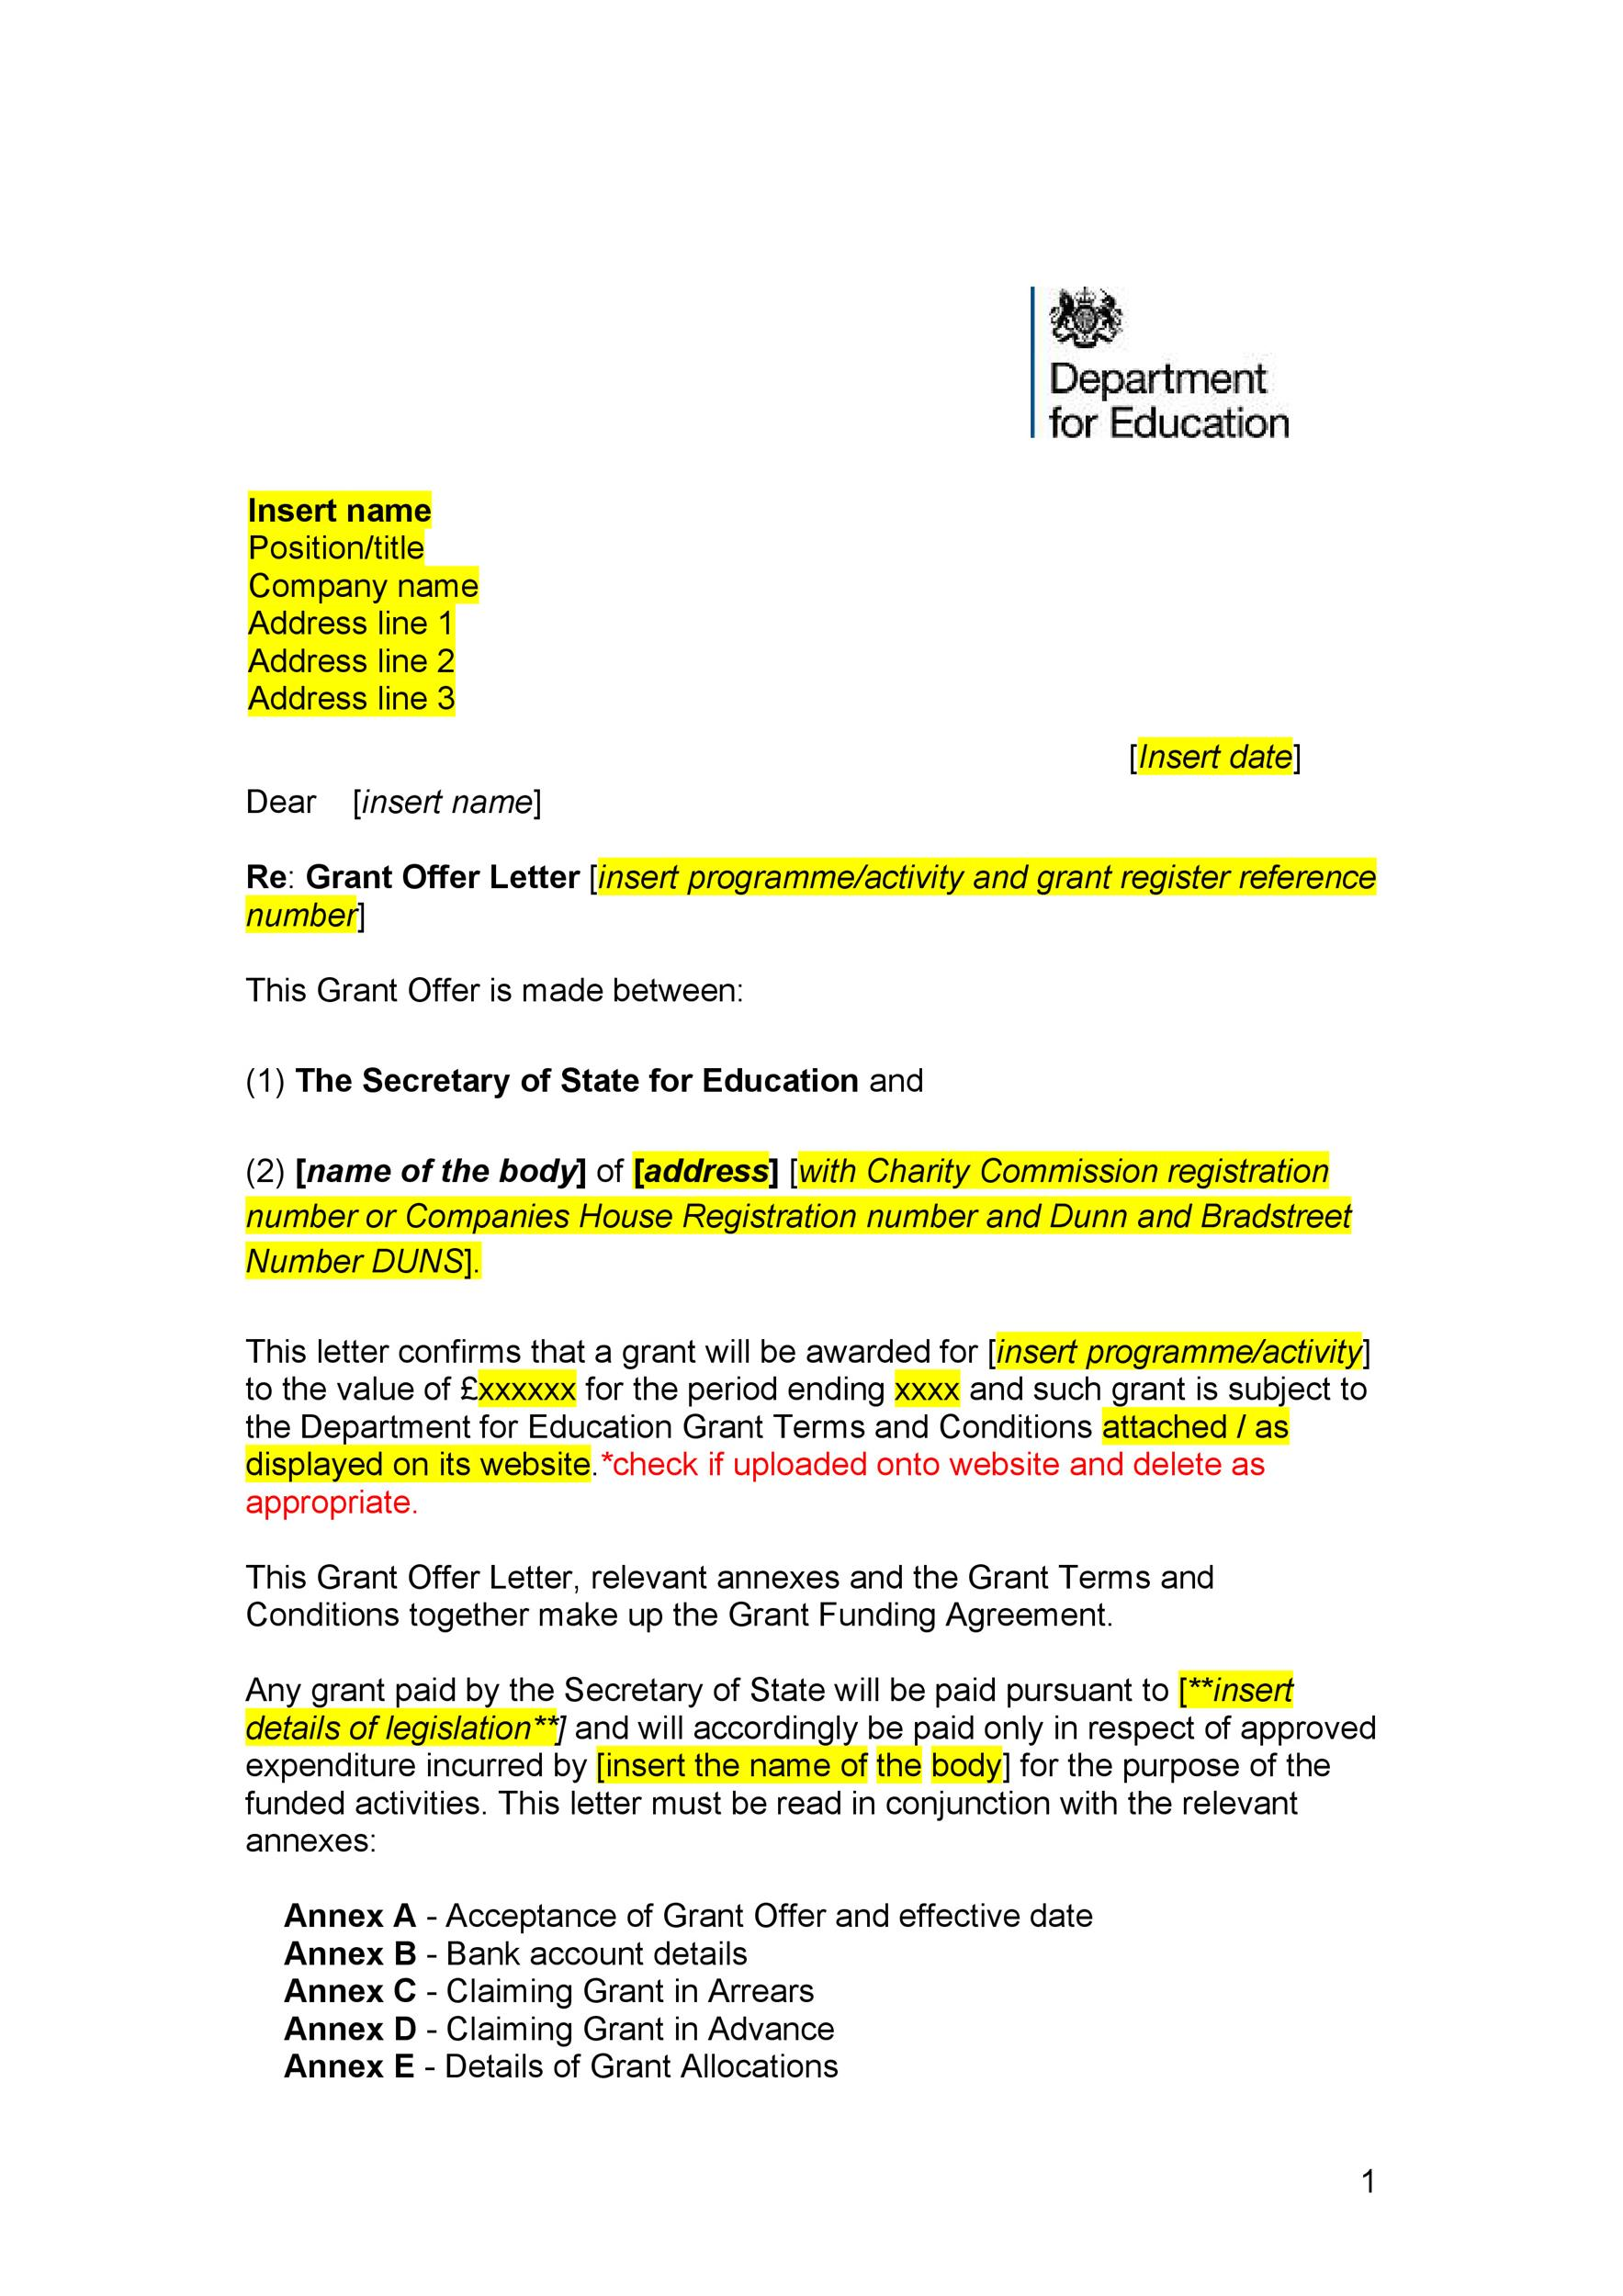 44 Fantastic Offer Letter Templates Employment Counter